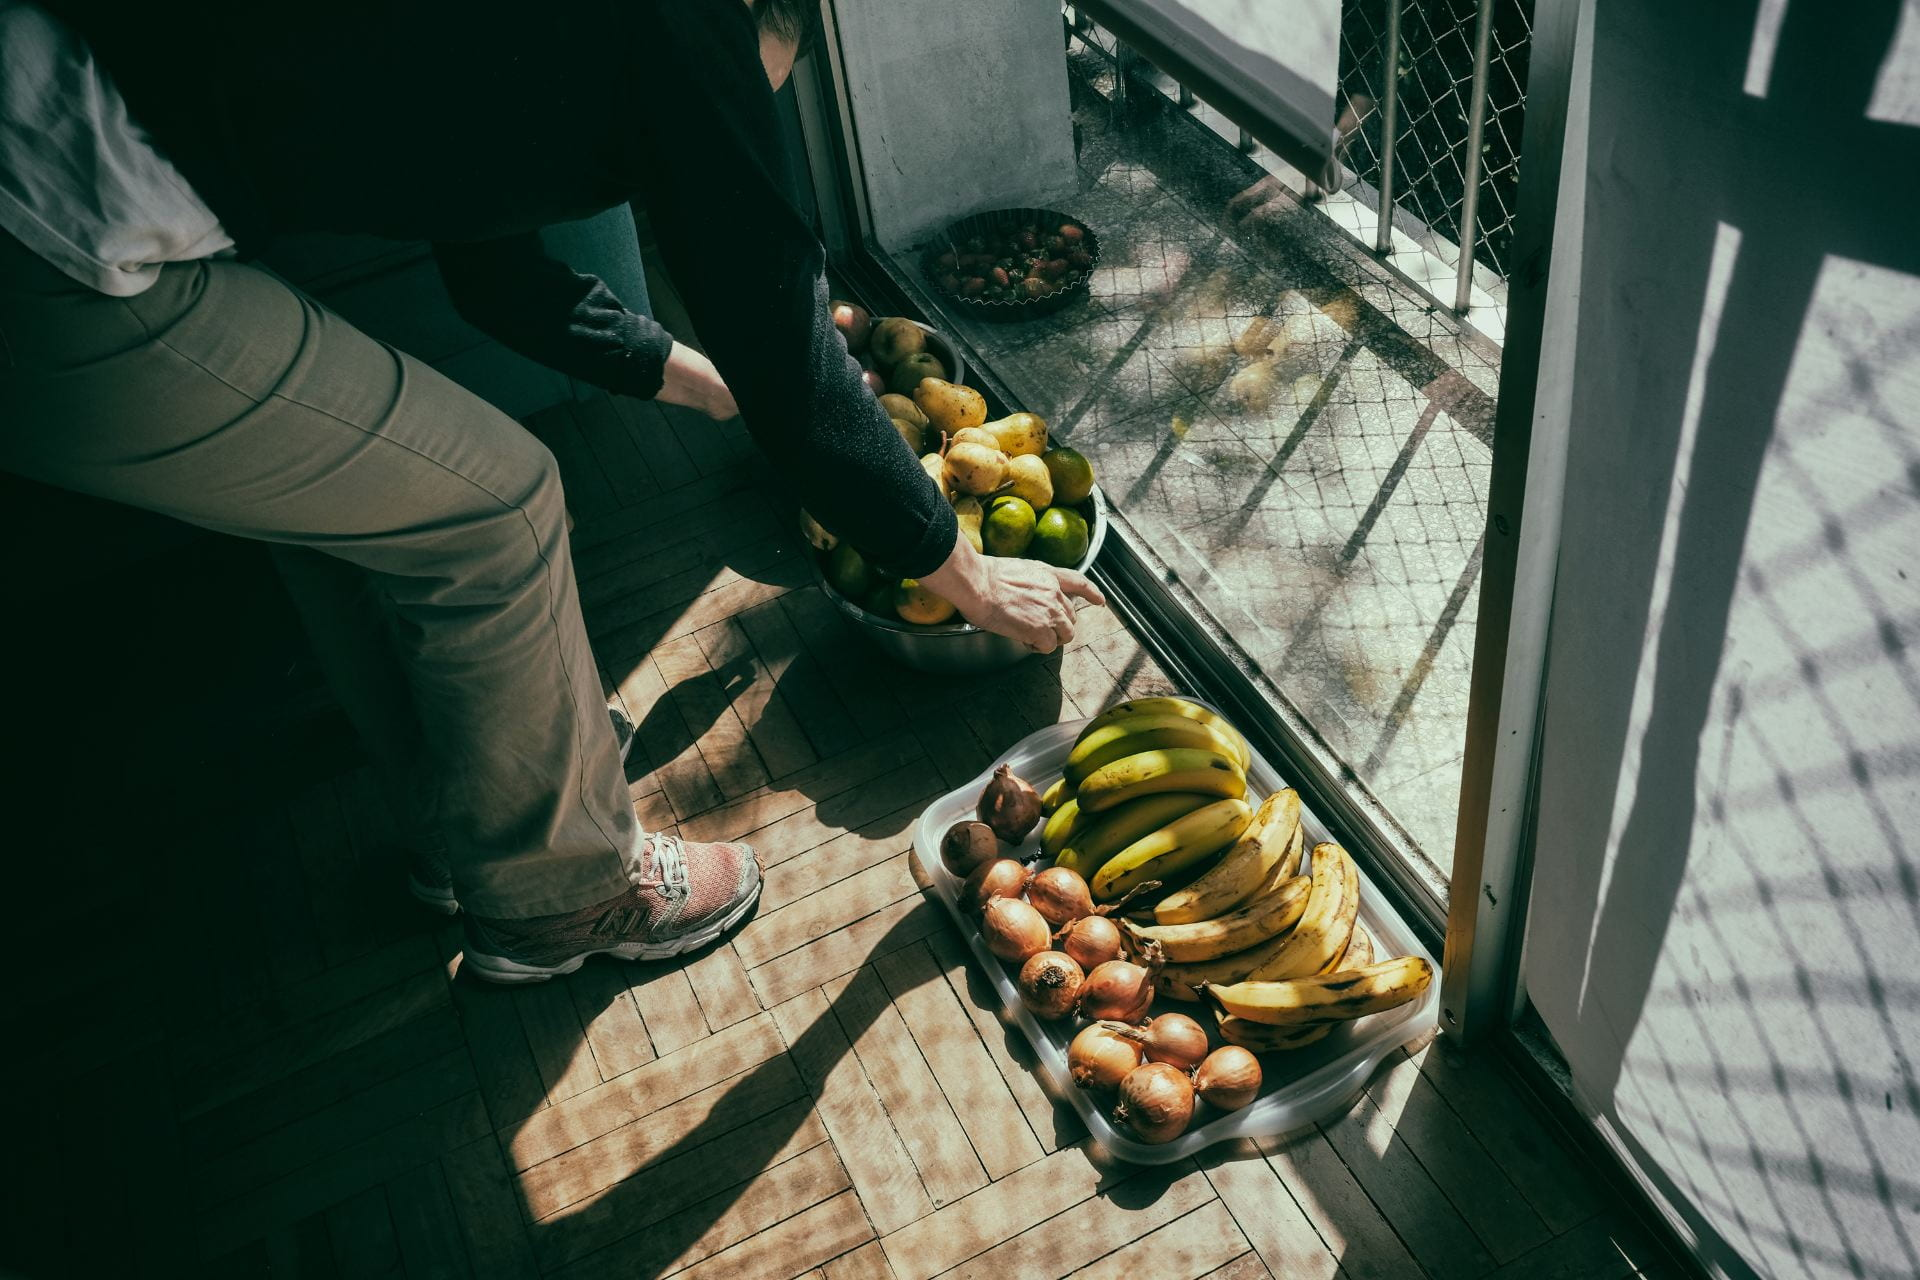 a person organizing the fruit on the floor